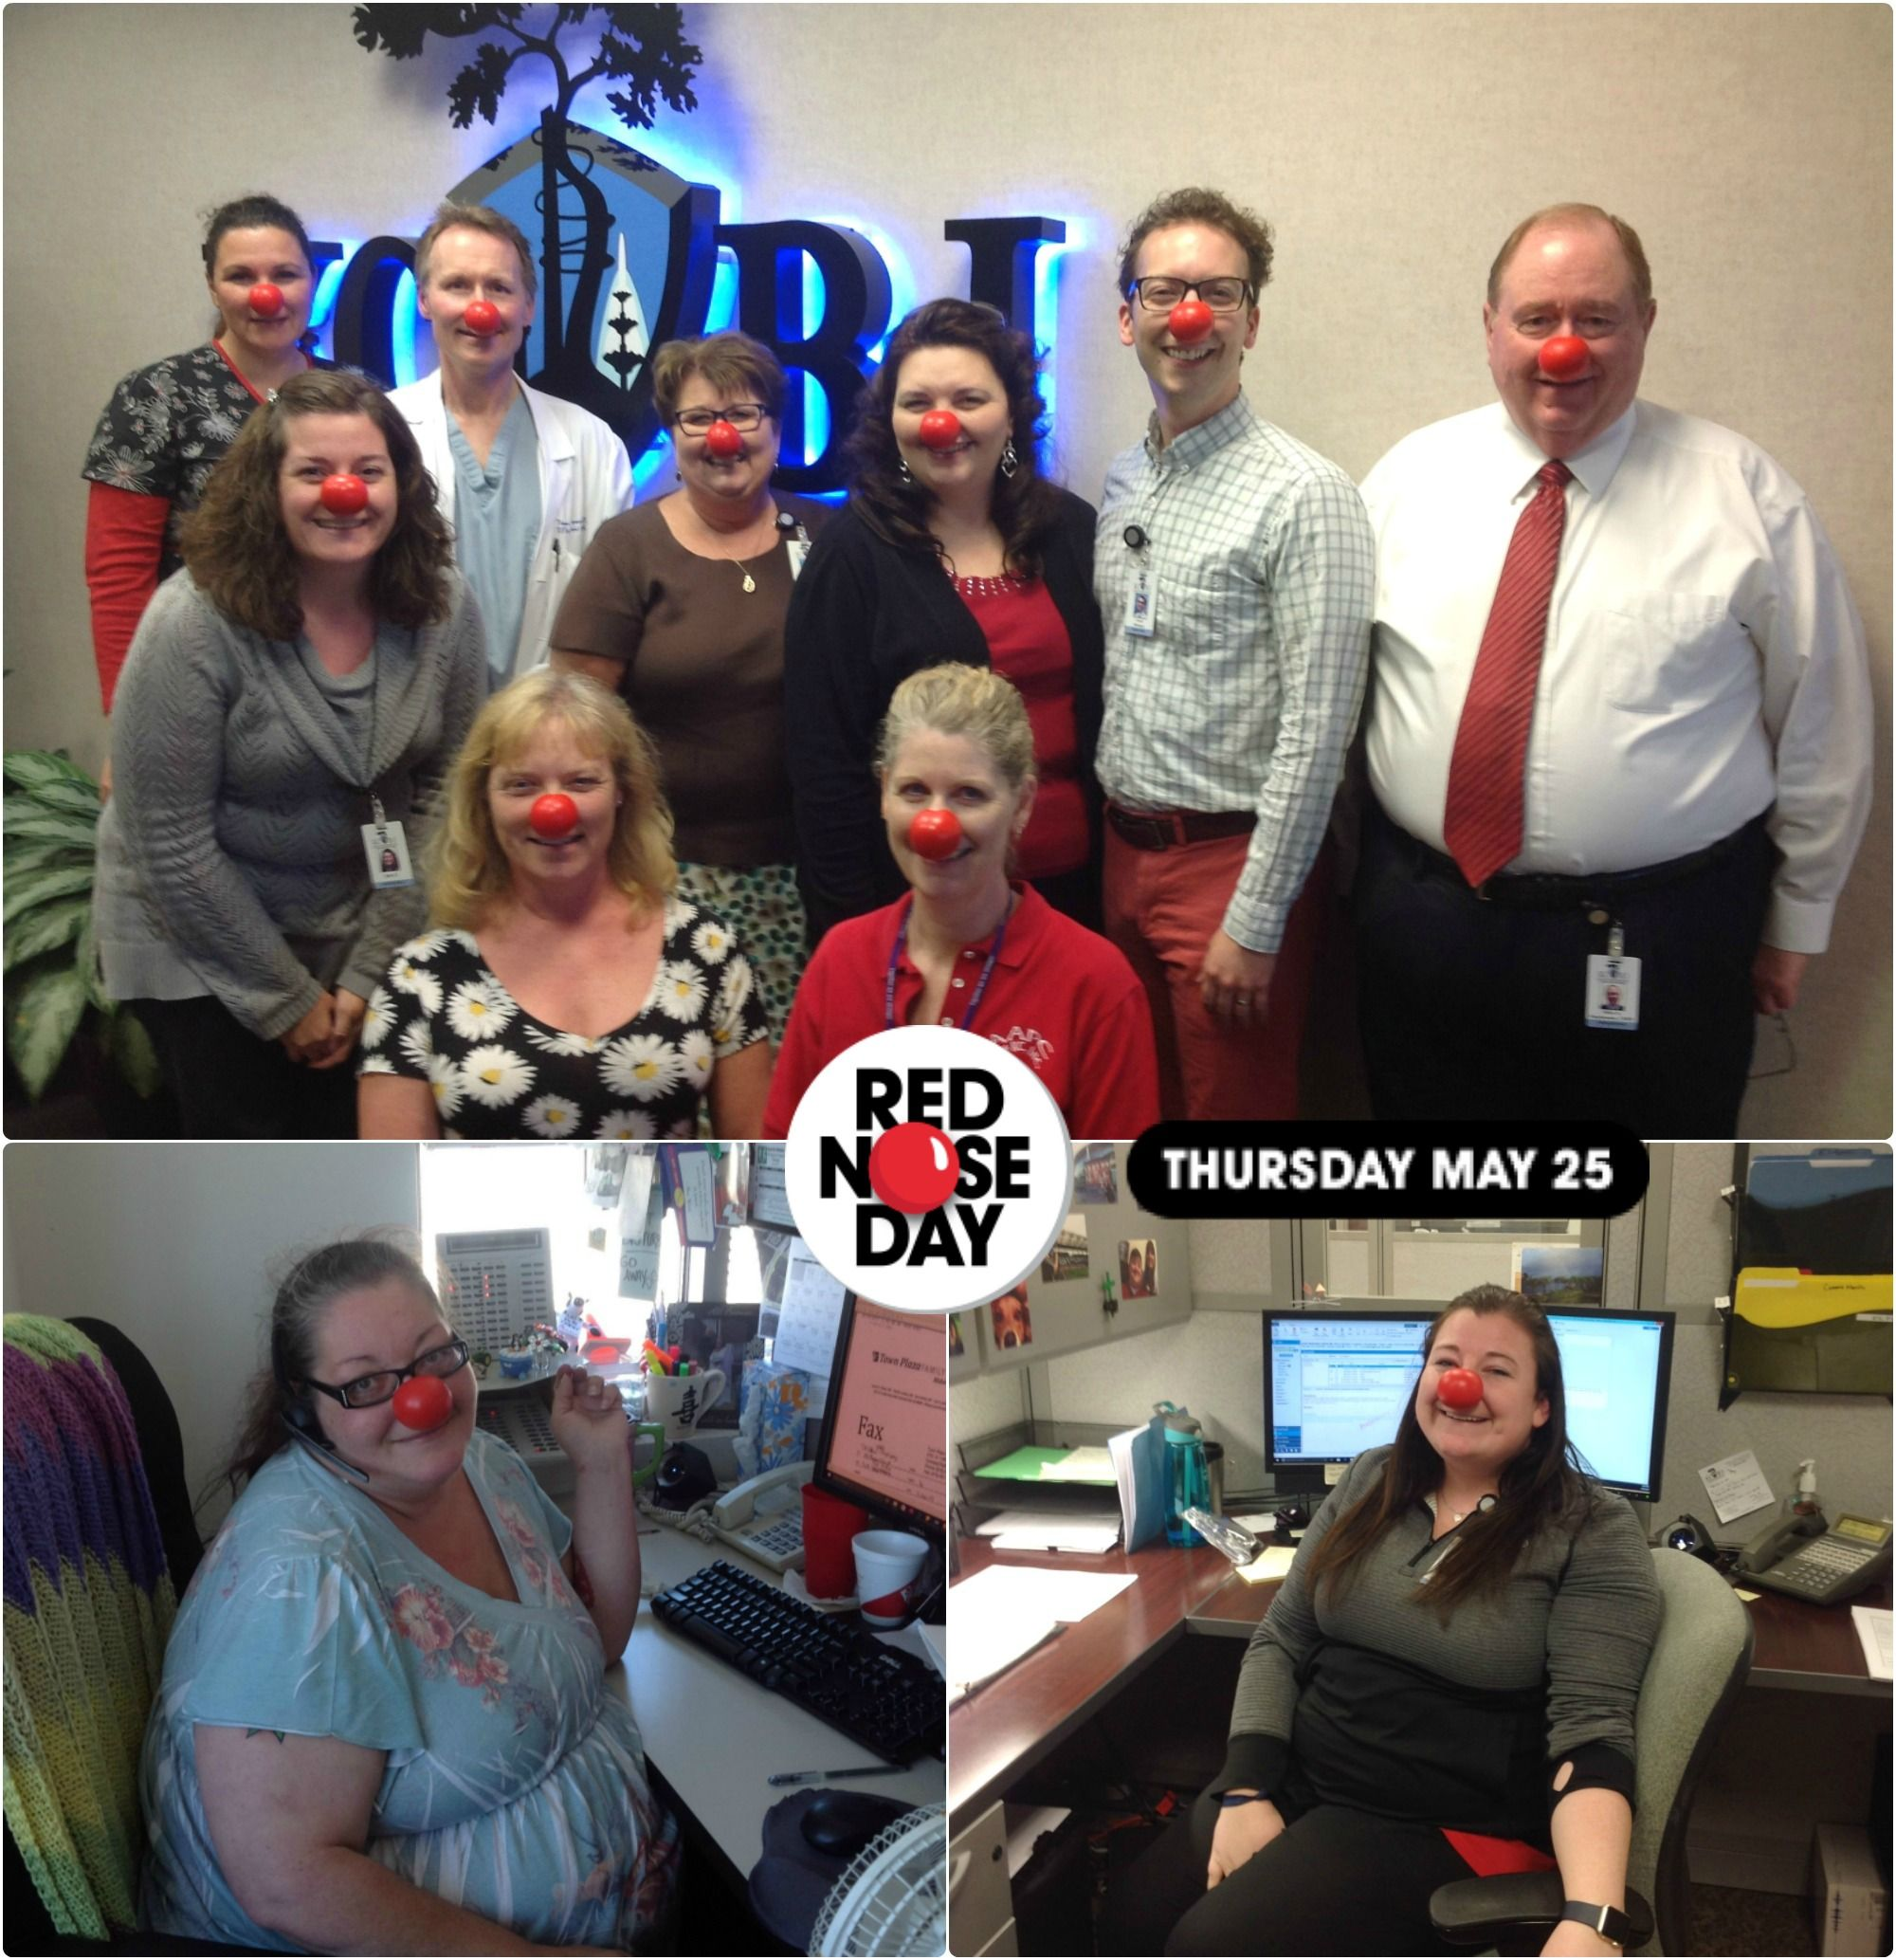 Red nose day team kcbj joined the fight to end child